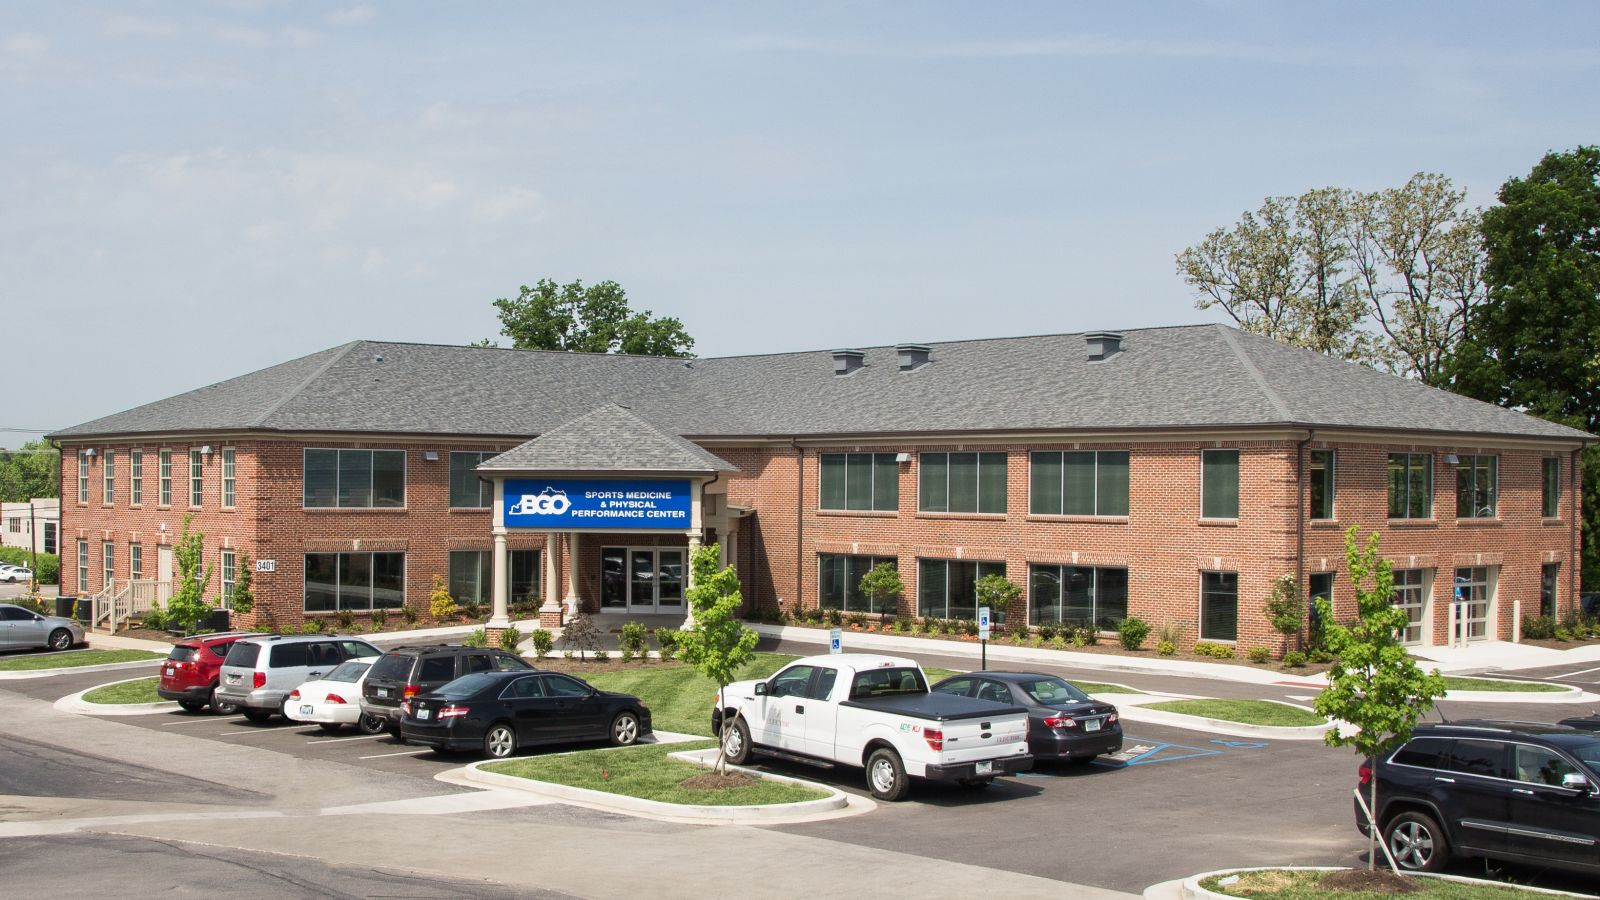 exterior image of medical building